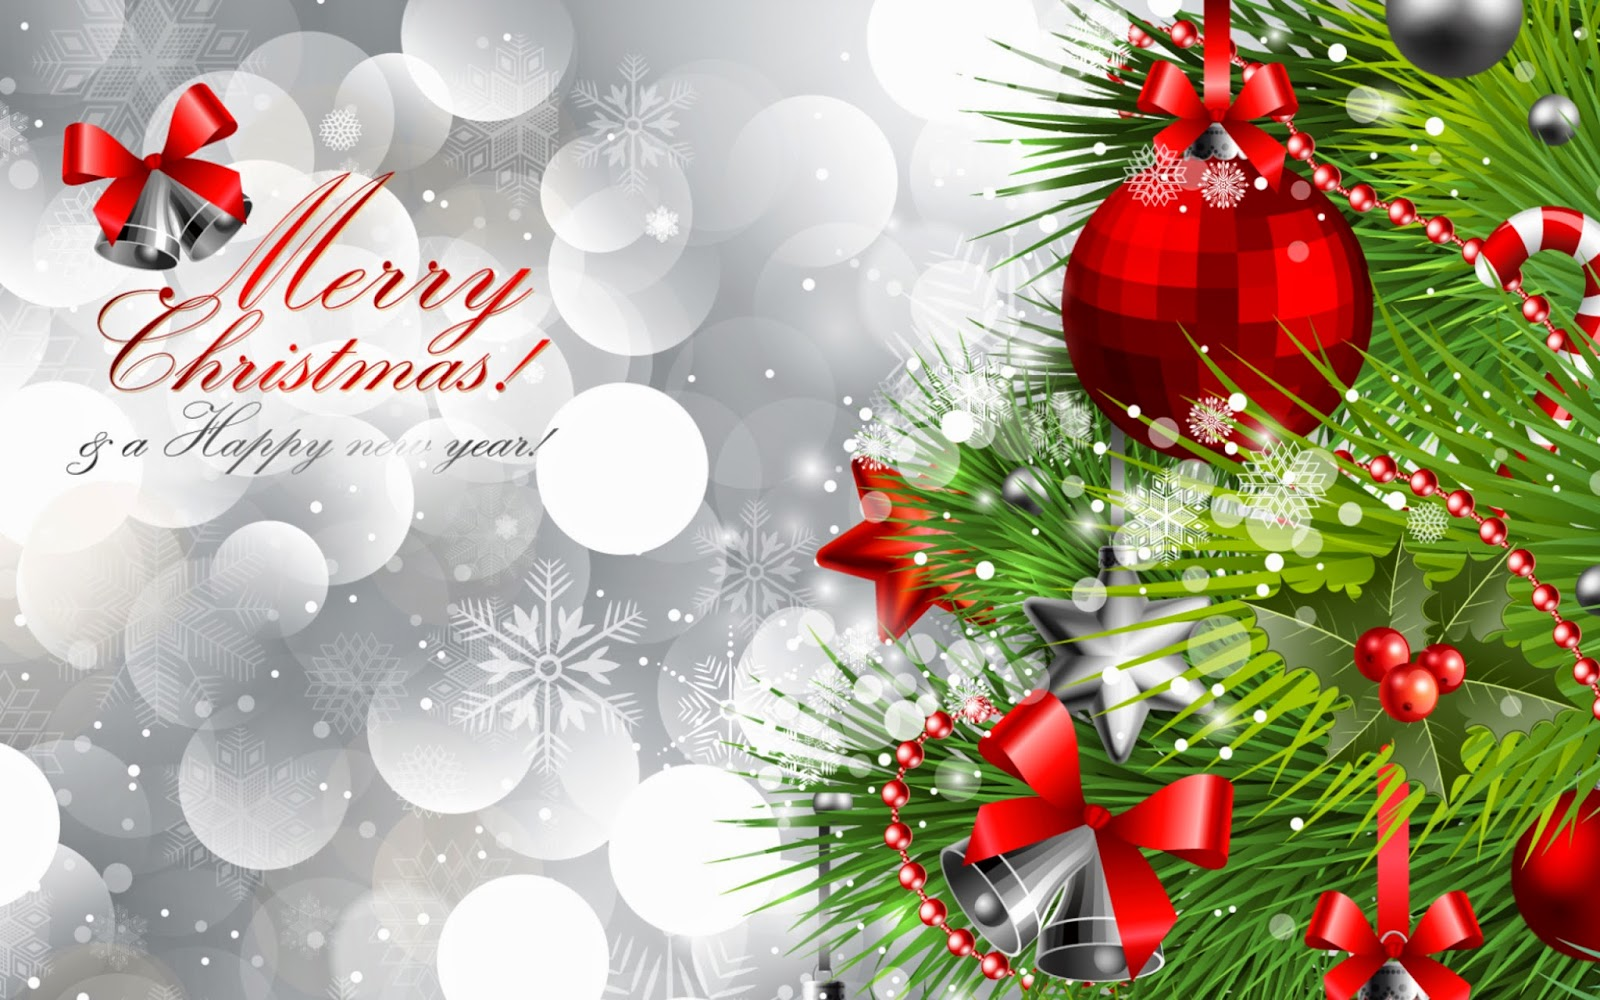 Merry-Christmas-and-happy-new-year-wishes-greeting-card-for-facebook-whatsapp-sharing.jpg